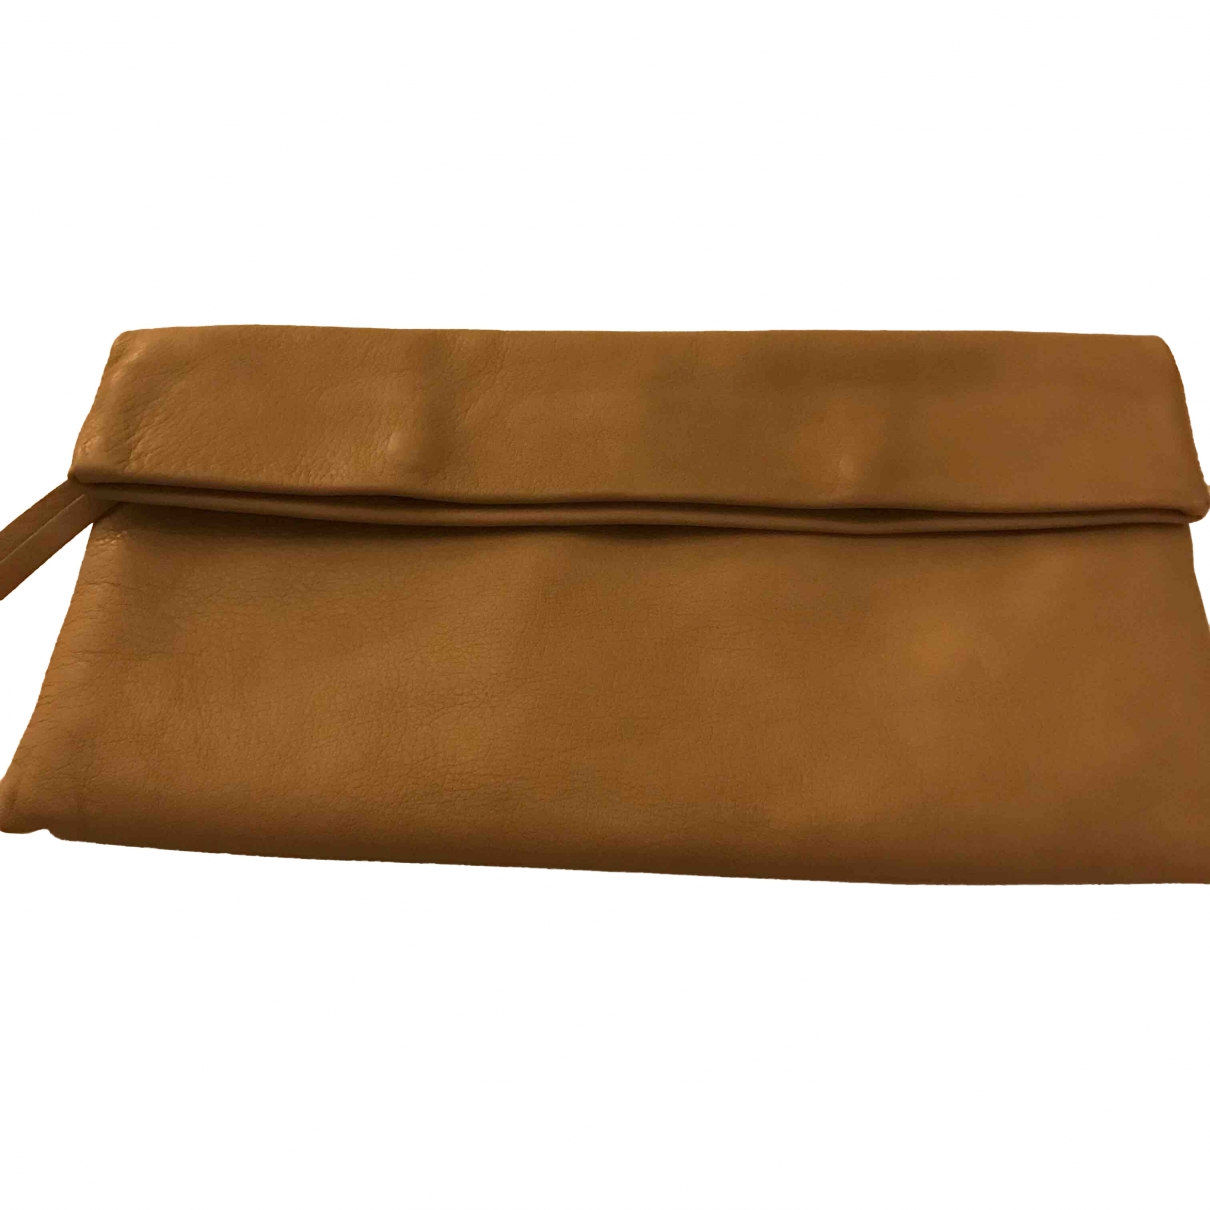 Gianni Chiarini \N Beige Leather Clutch bag for Women \N